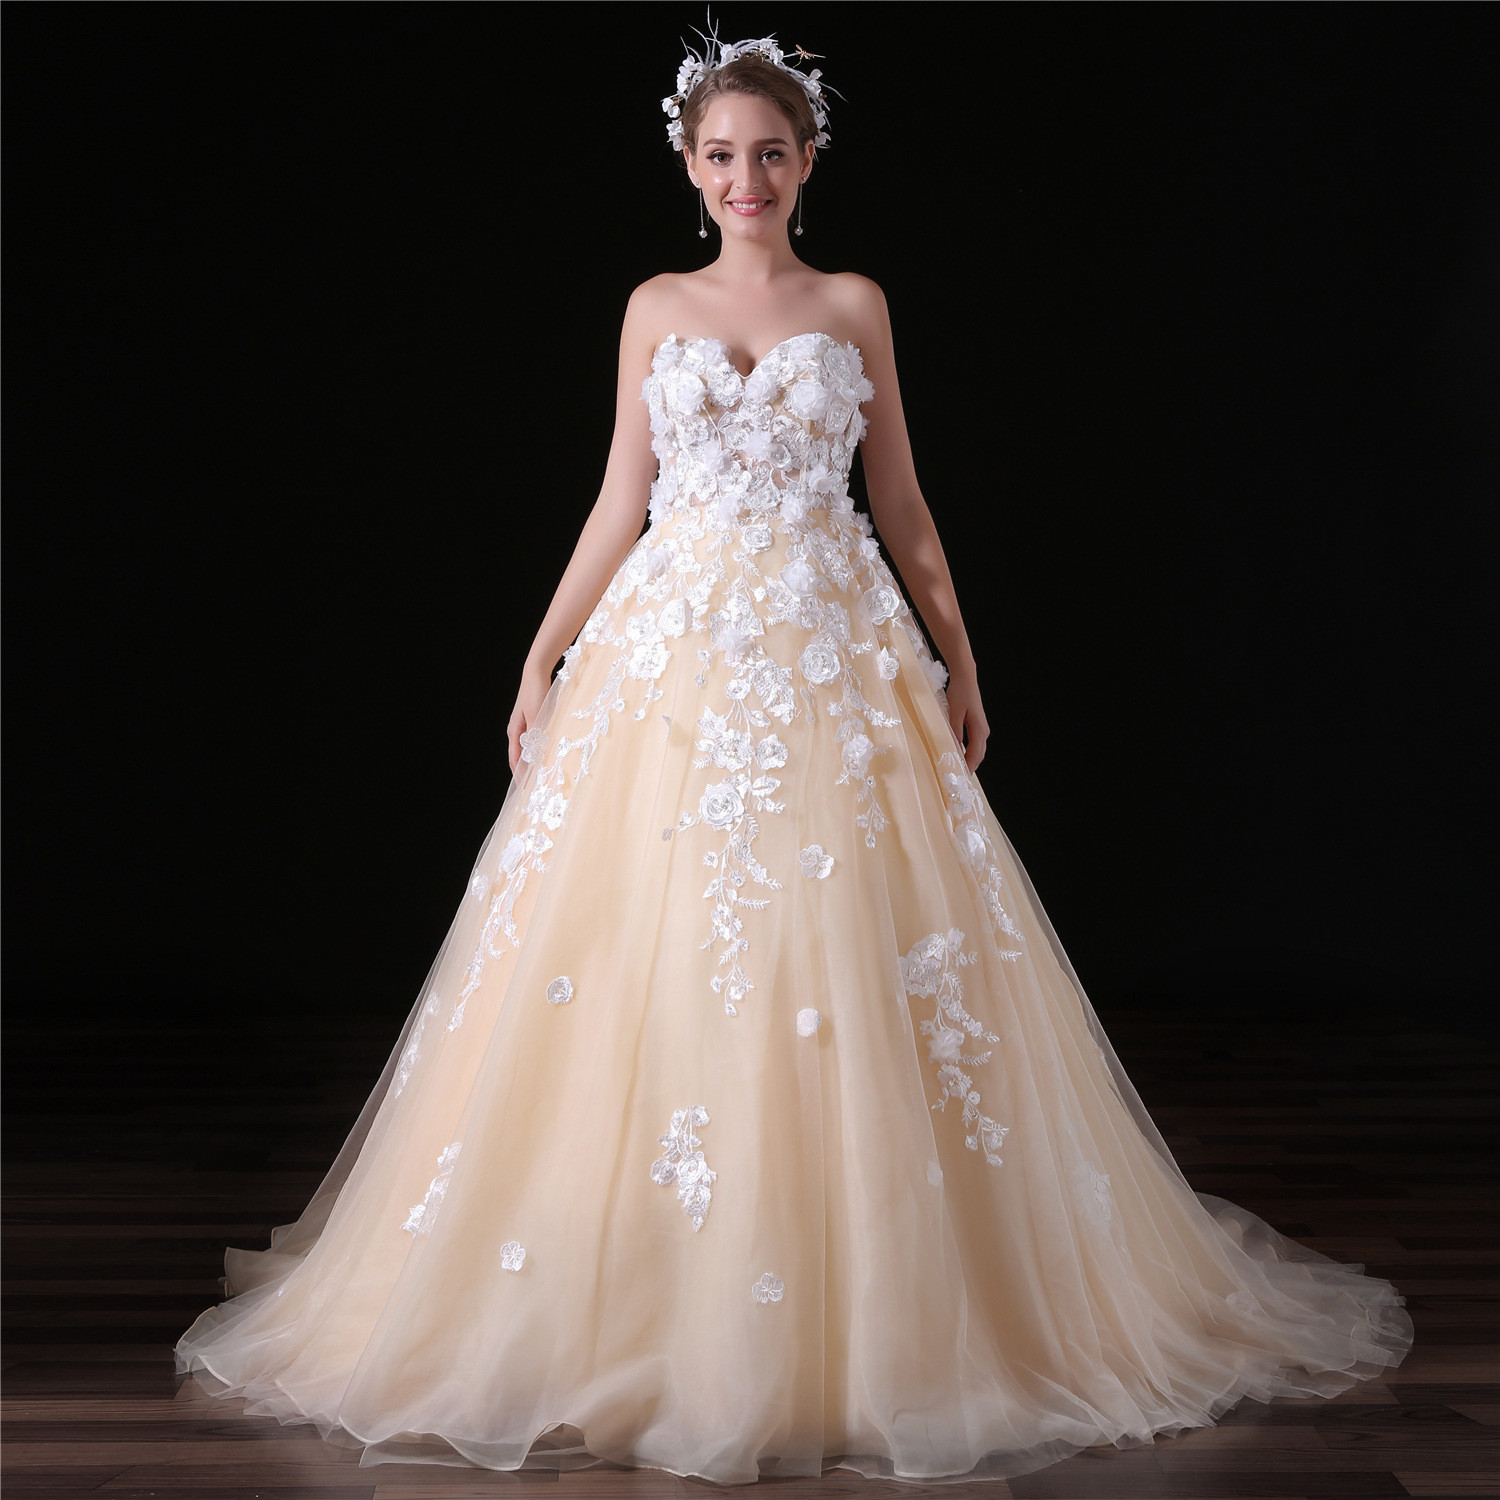 Wedding Dress With Flowers Strapless Champagne Bridal Dress